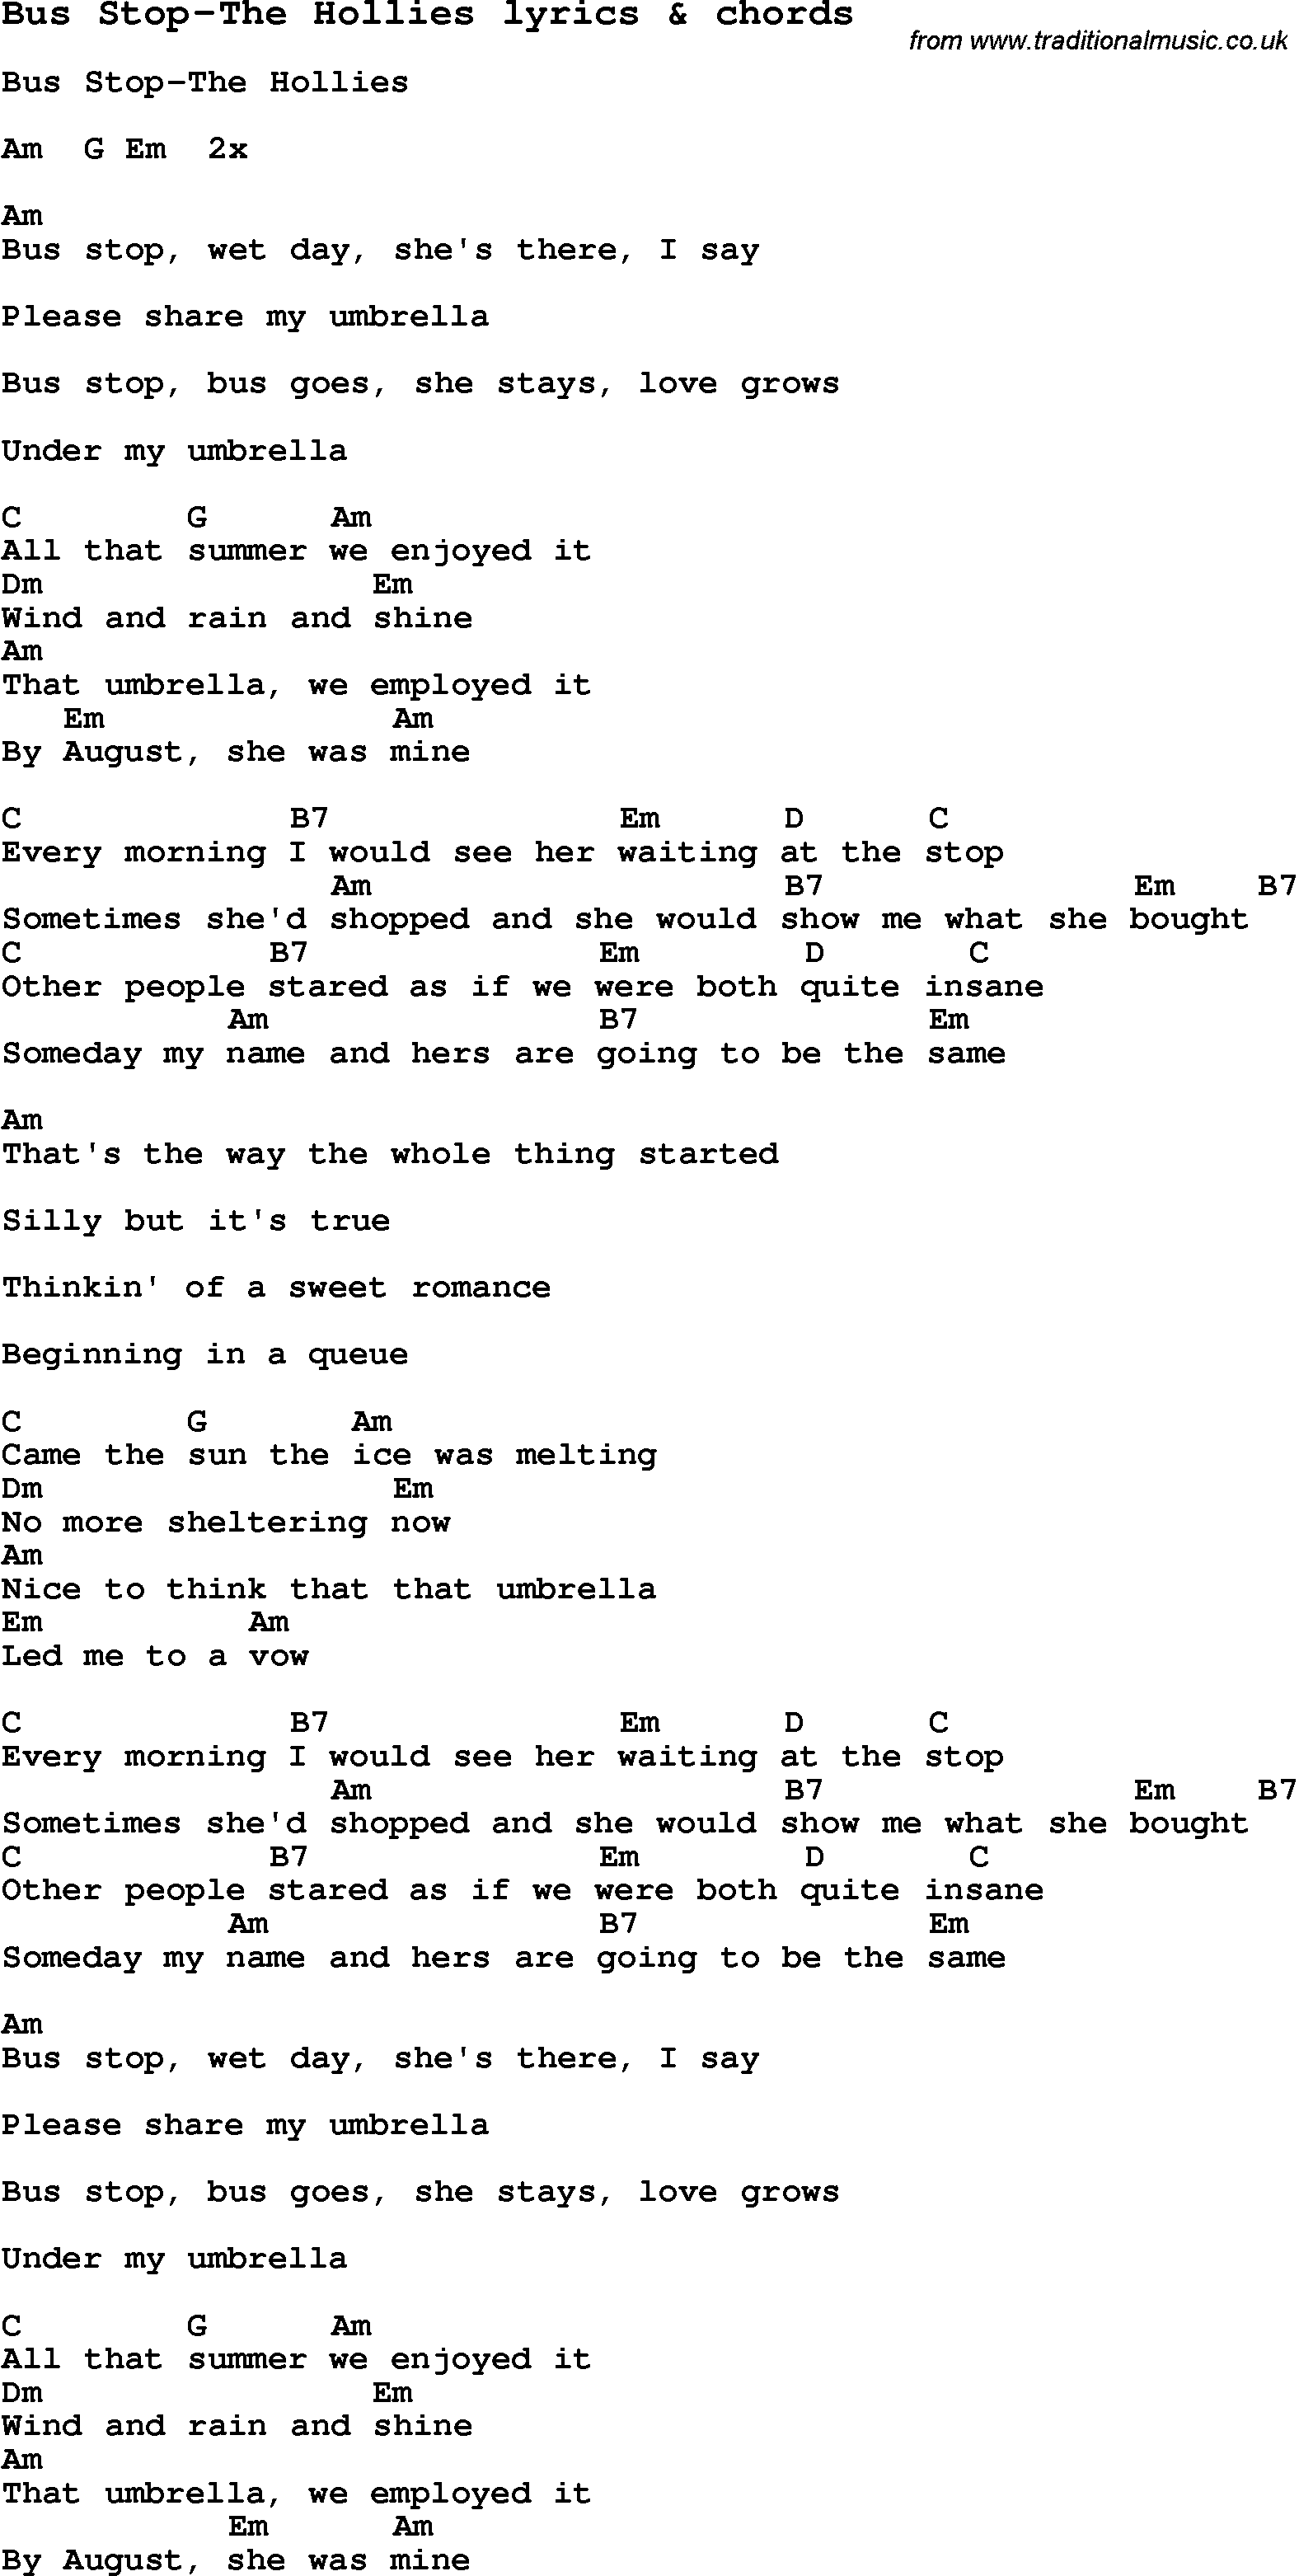 Love Song Lyrics For Bus Stop The Hollies With Chords For Ukulele